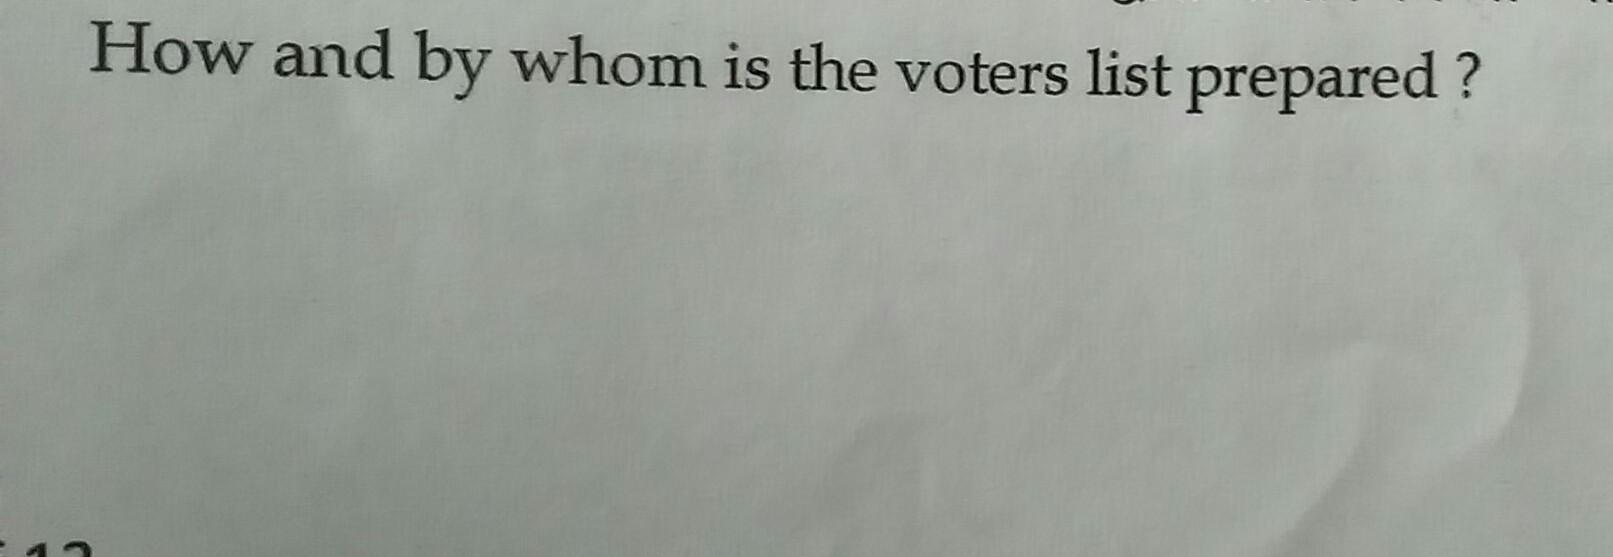 how and by whom is the voters list prepared - Brainly in